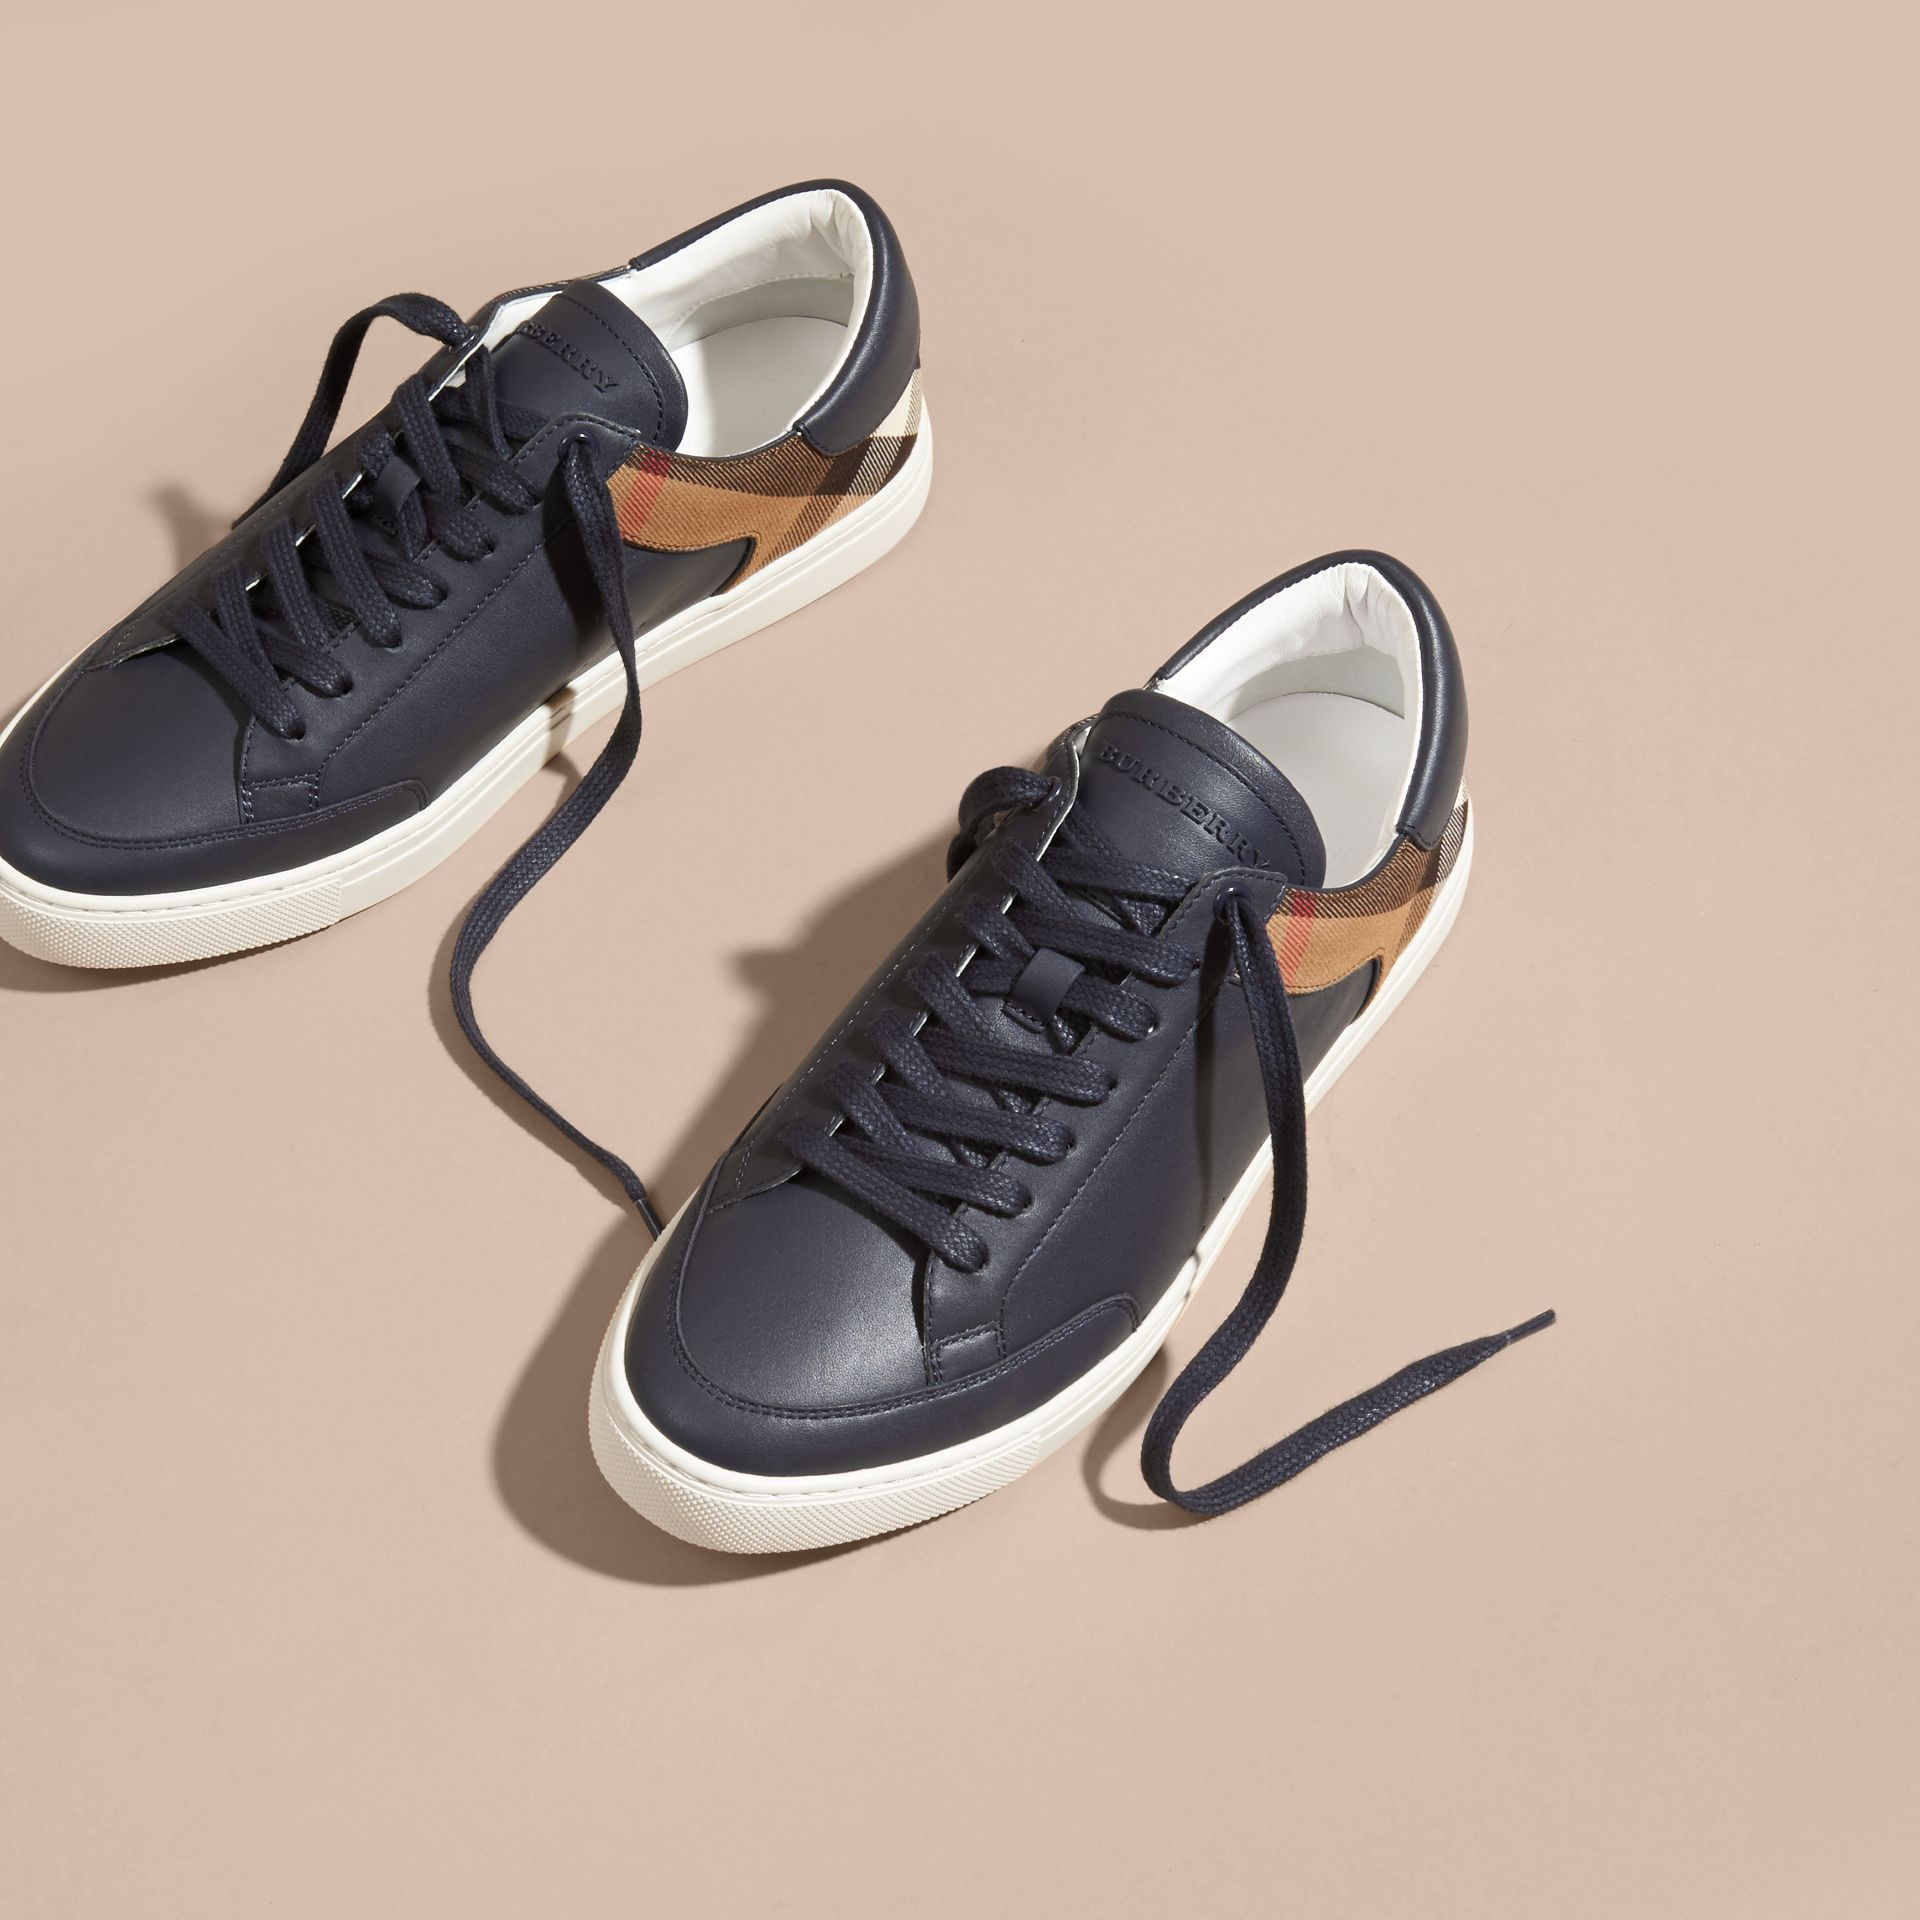 House check/true navy Leather and House Check Trainers Check/true Navy - gallery image 3